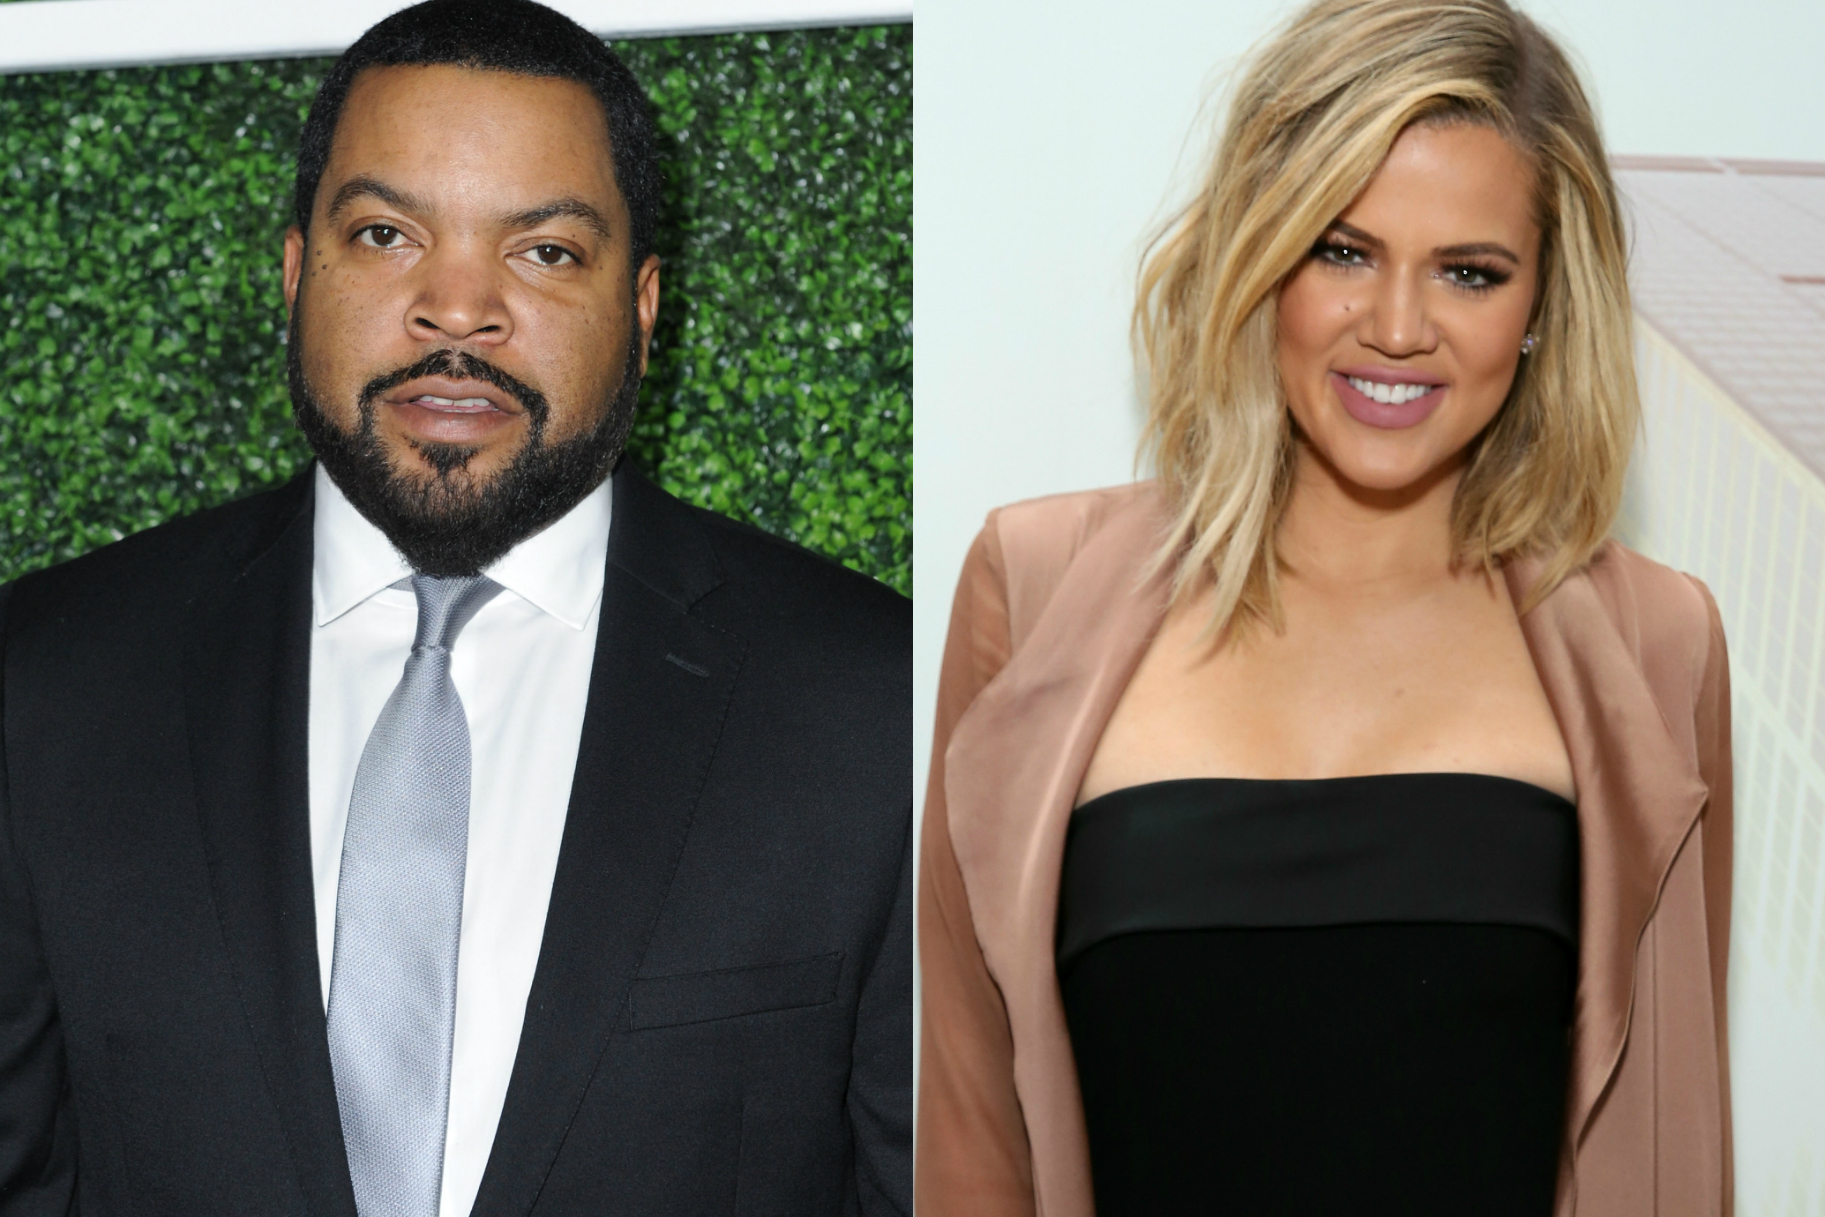 Ice Cube Disapproves Of Khloe Kardashians Thirst For His